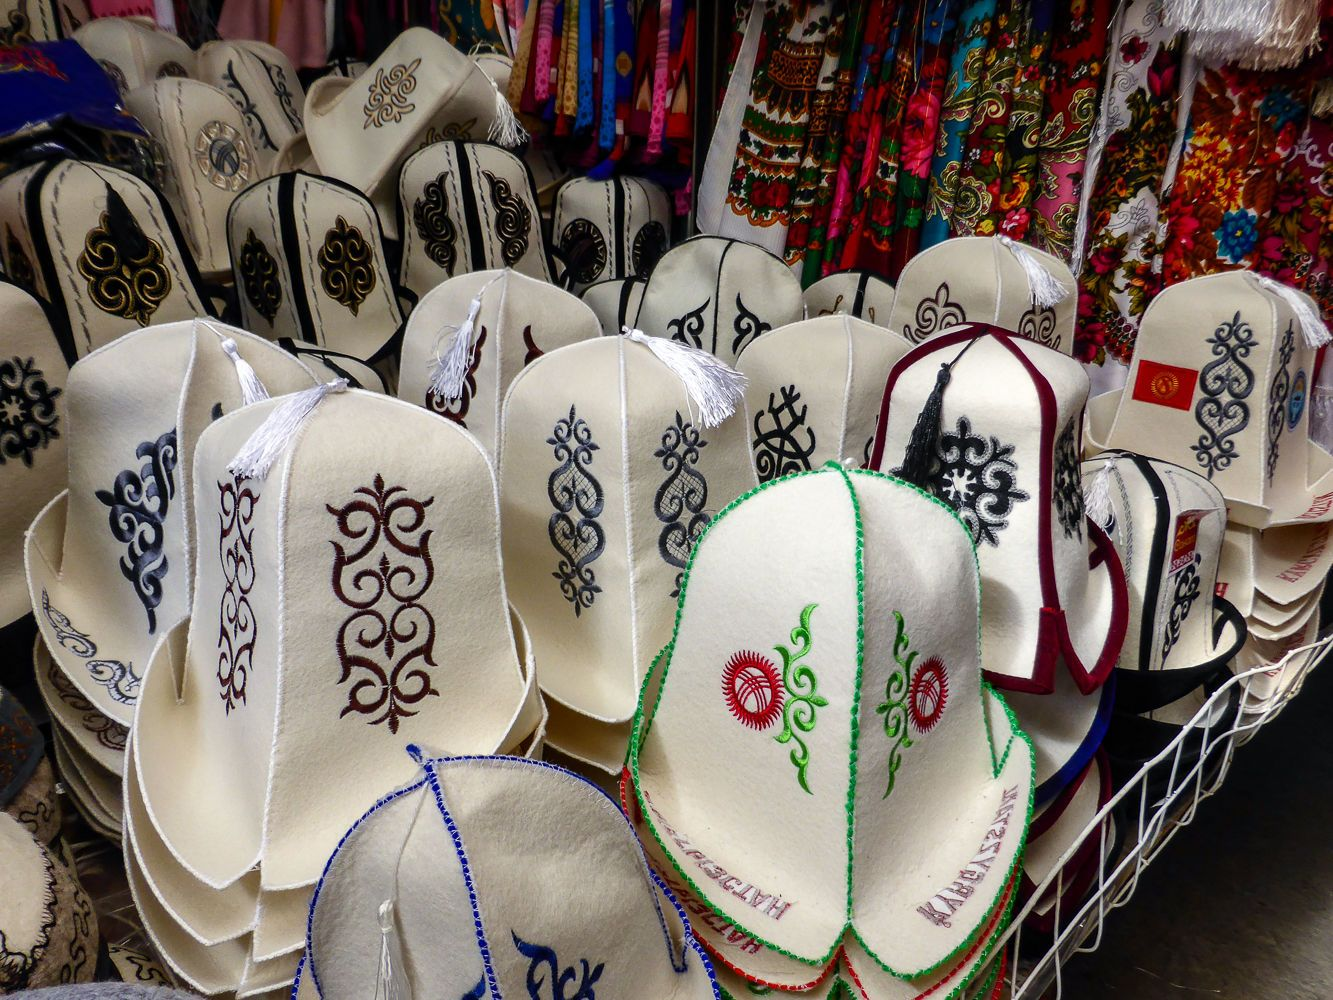 Osh Bazaar- Bishkek city tour shopping